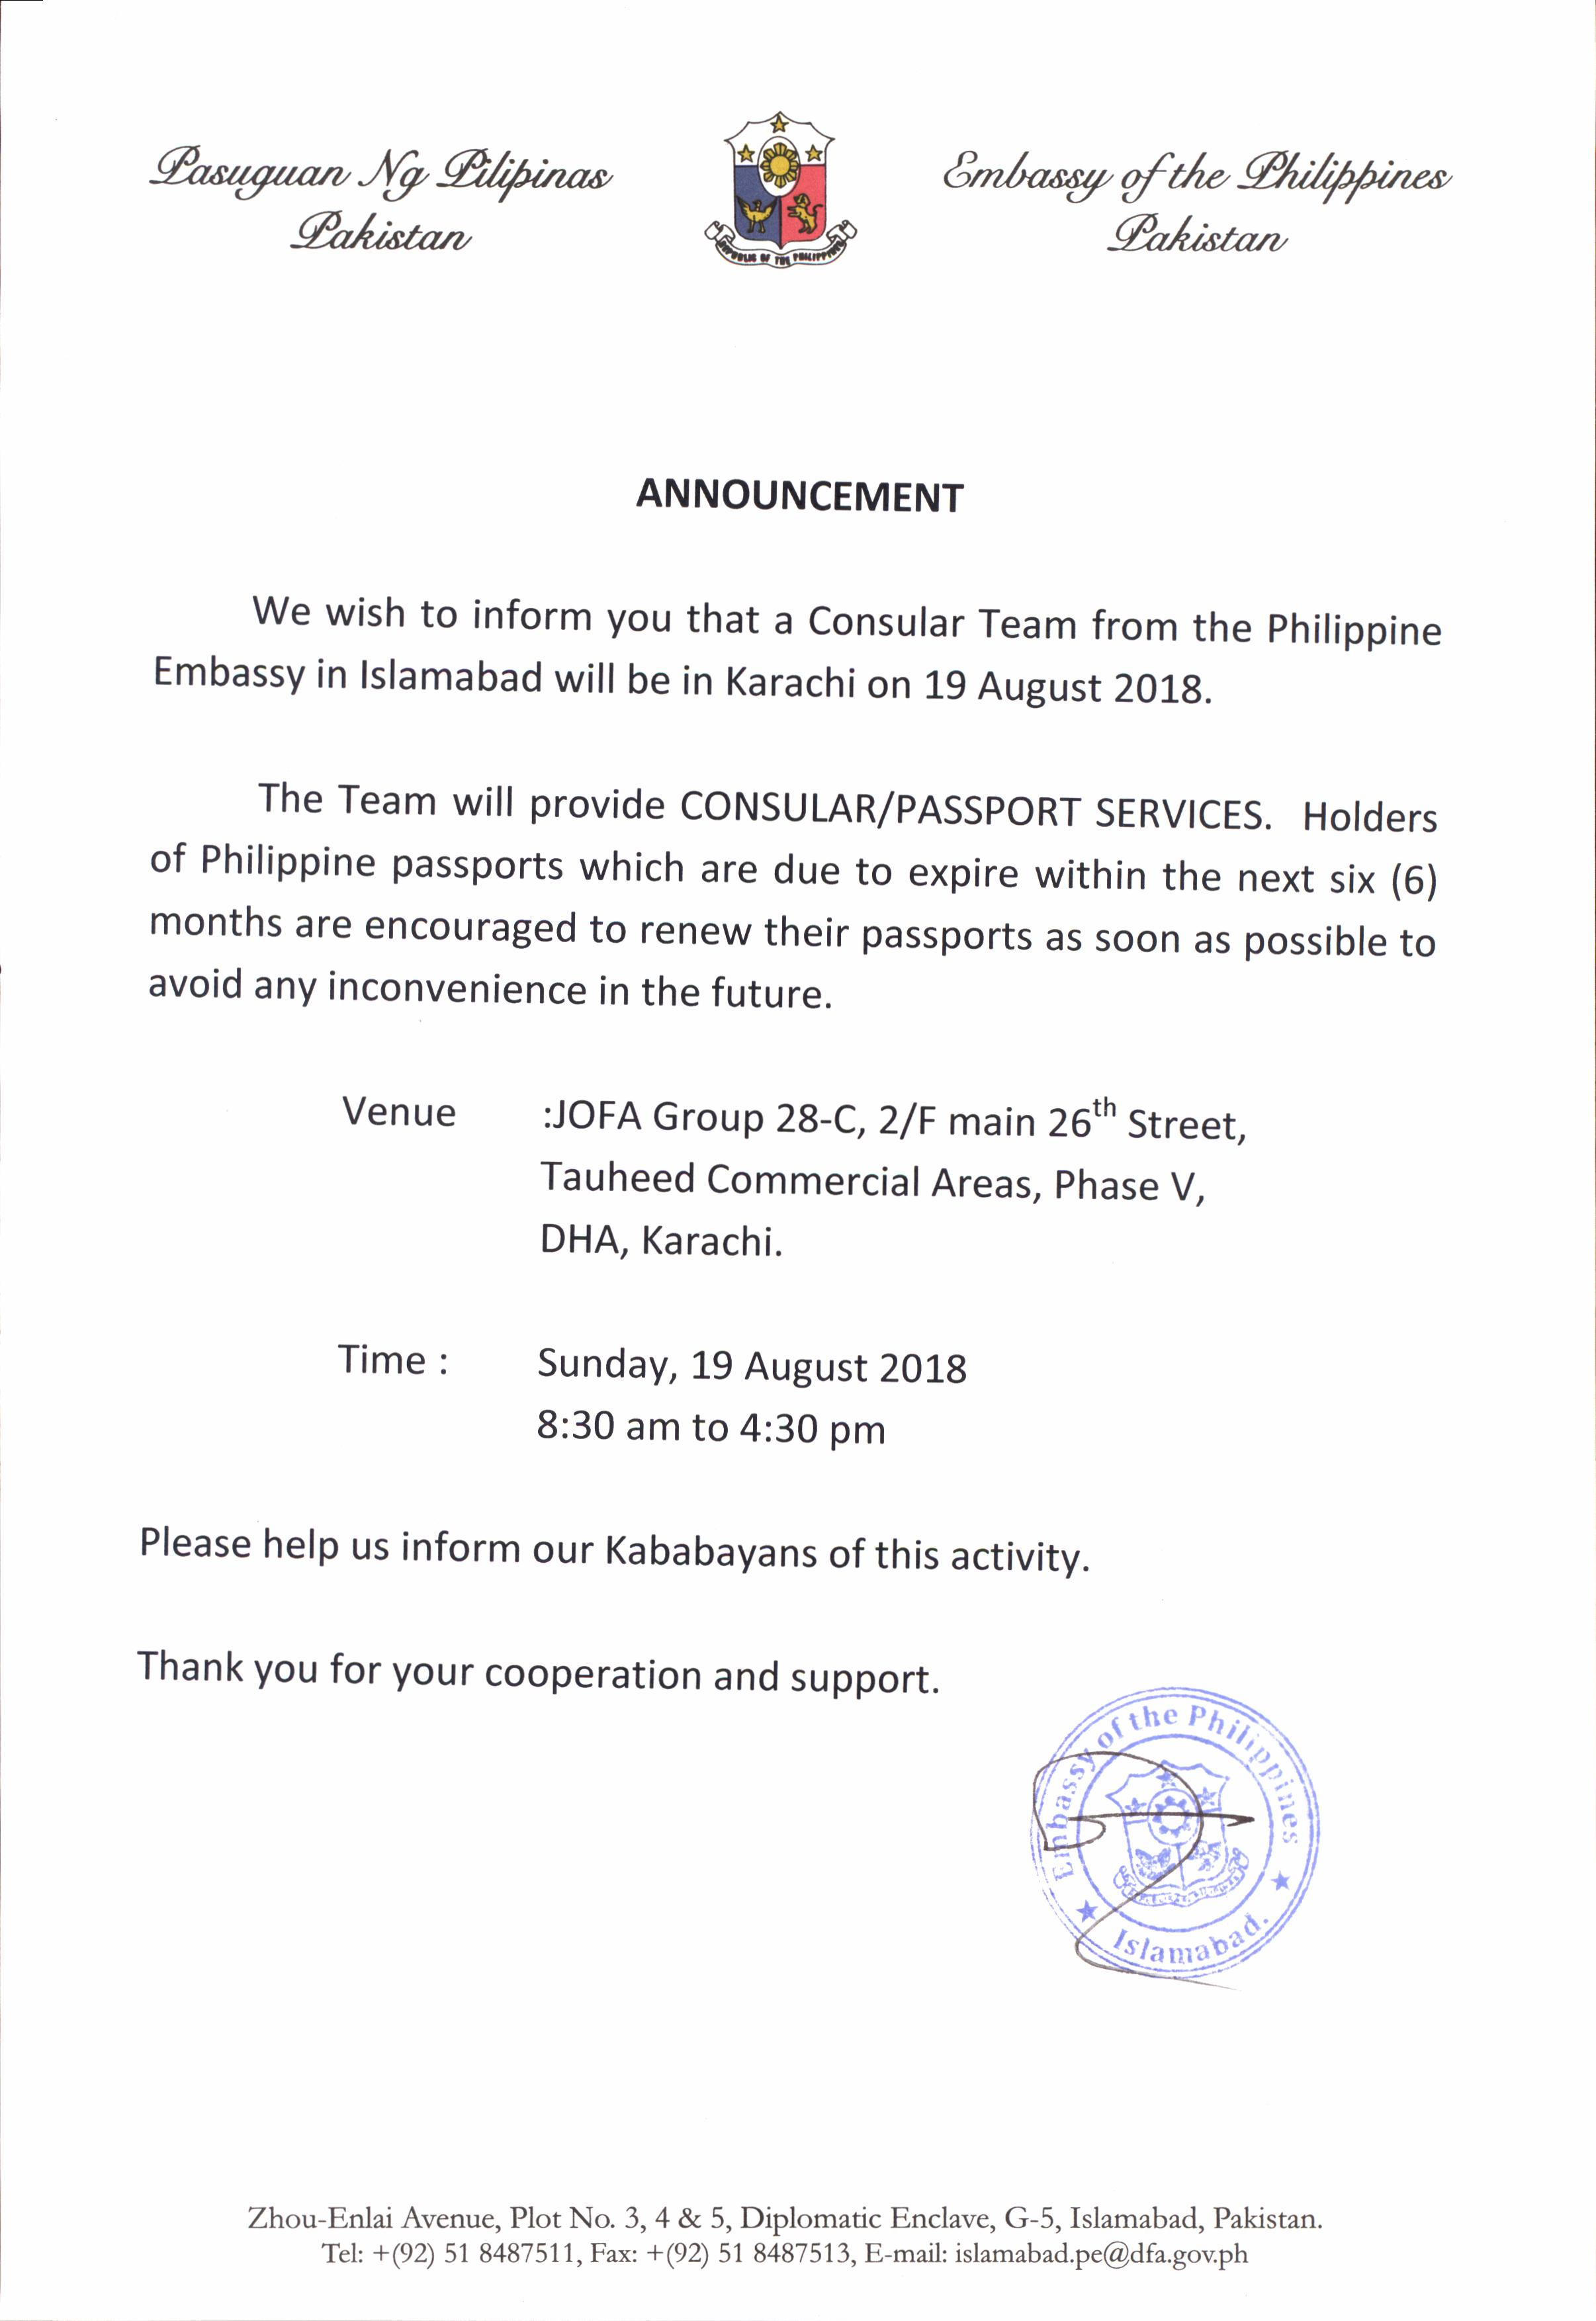 Philippine Embassy News/Announcement